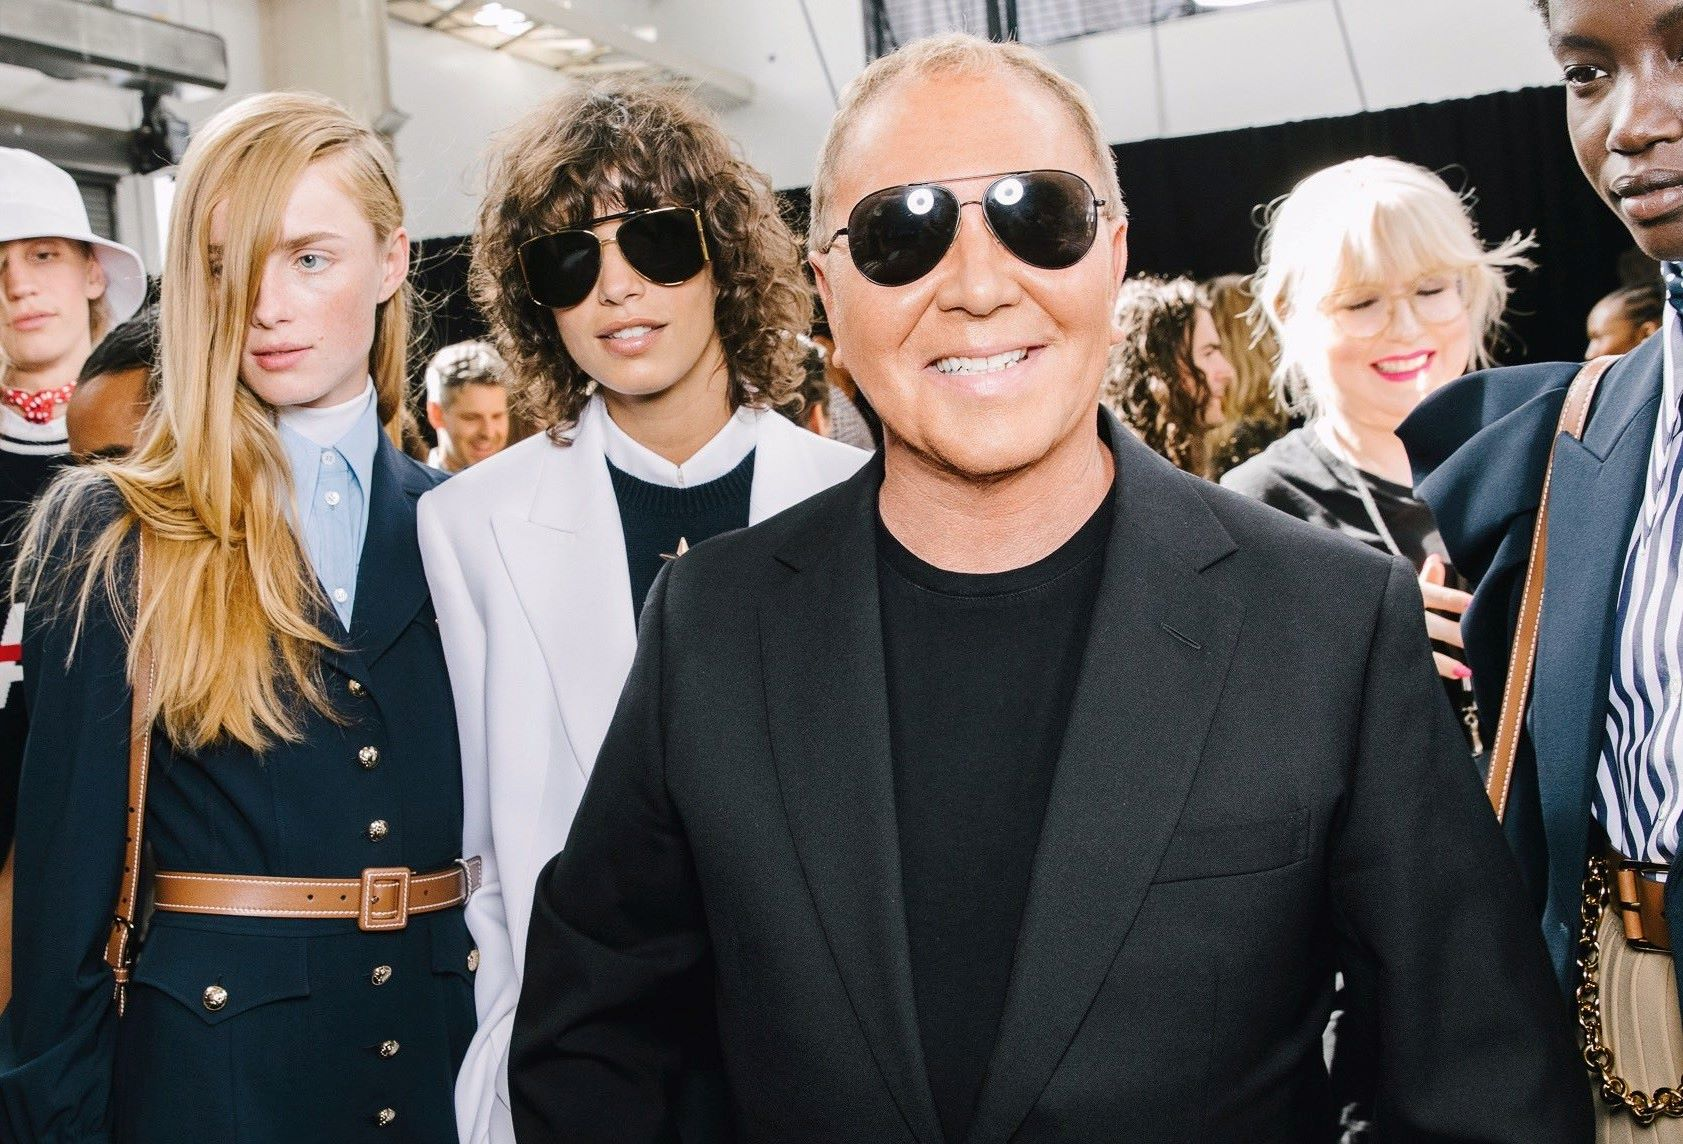 Michael Kors in a fashion show